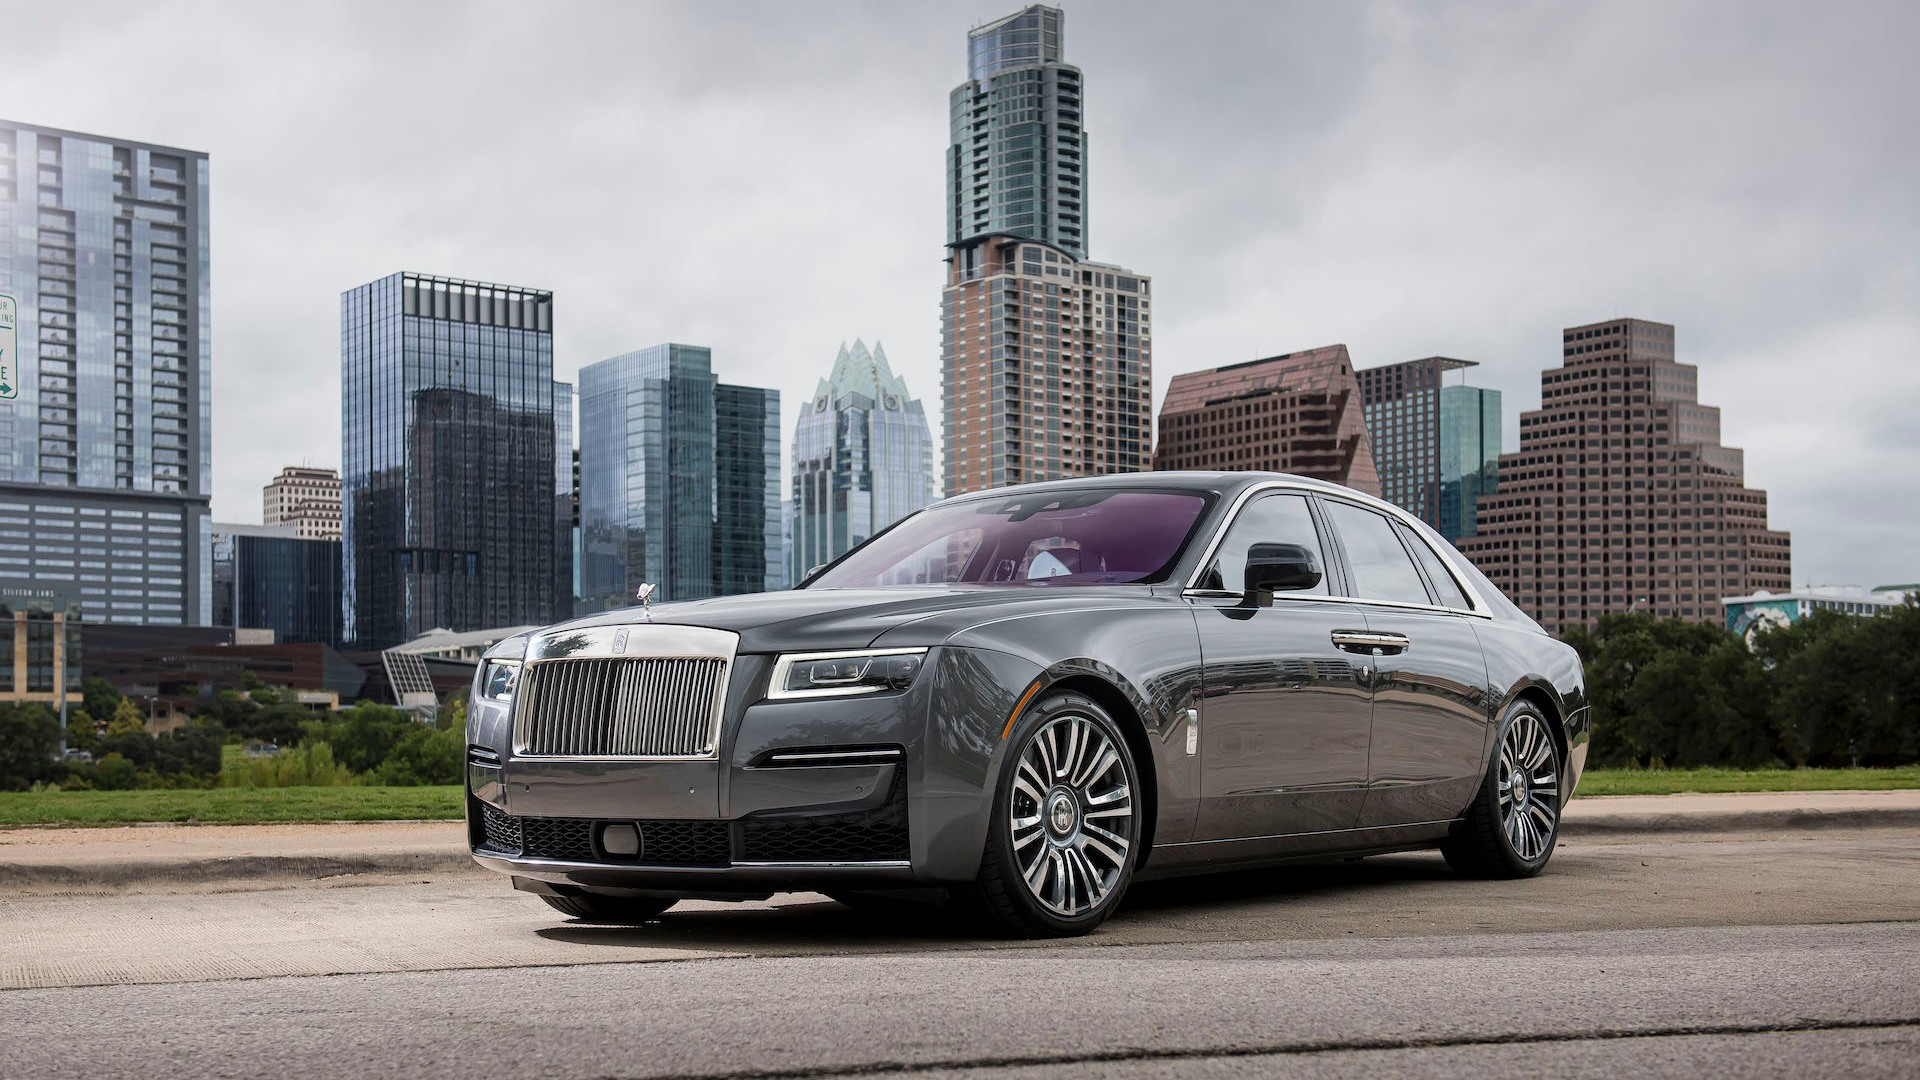 First drive review: 2021 Rolls-Royce Ghost floats like a butterfly, stings like a V-12